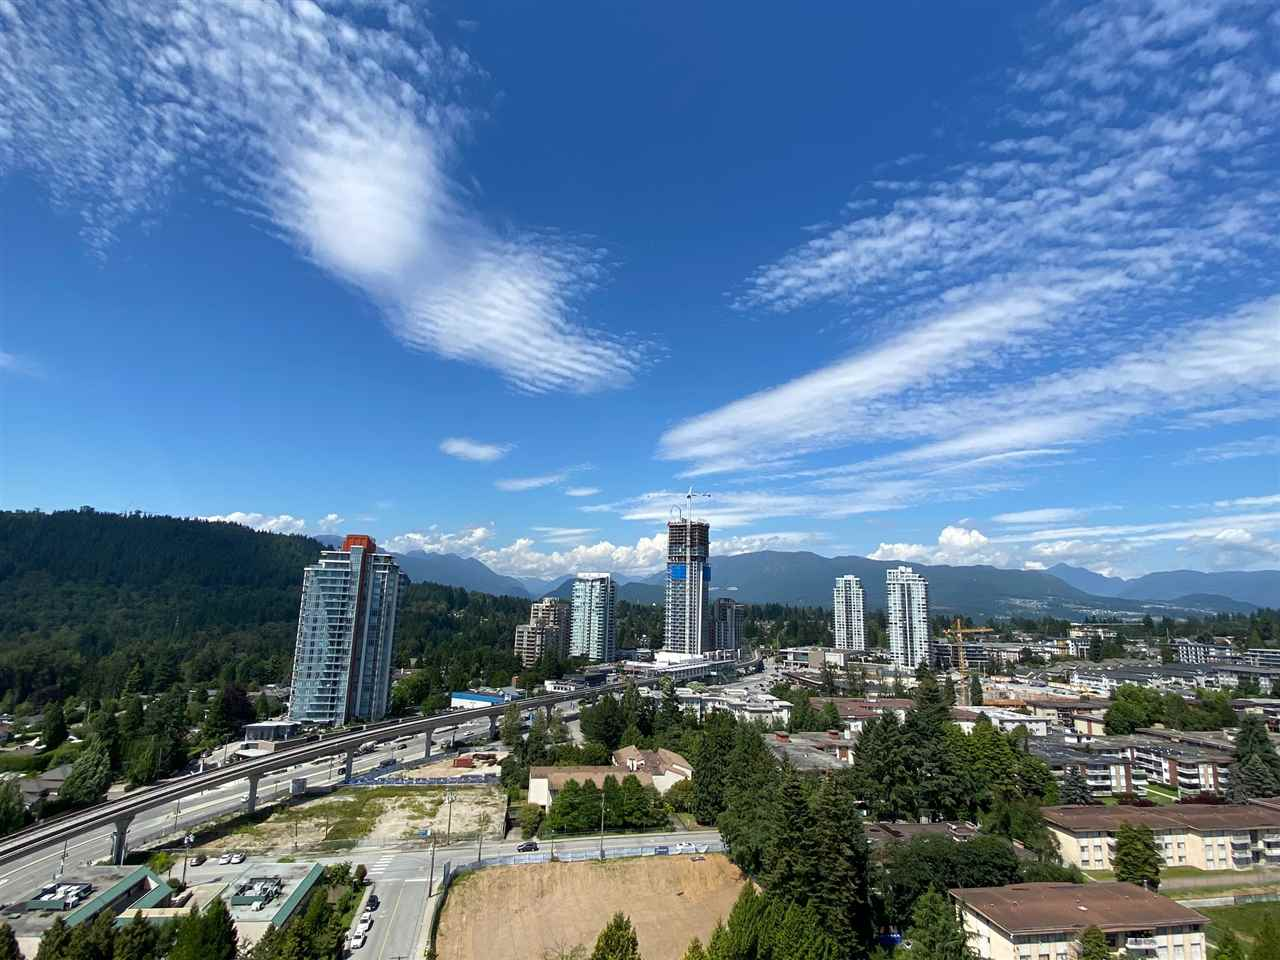 2009 657 WHITING WAY - Coquitlam West Apartment/Condo for sale, 2 Bedrooms (R2470807) - #17